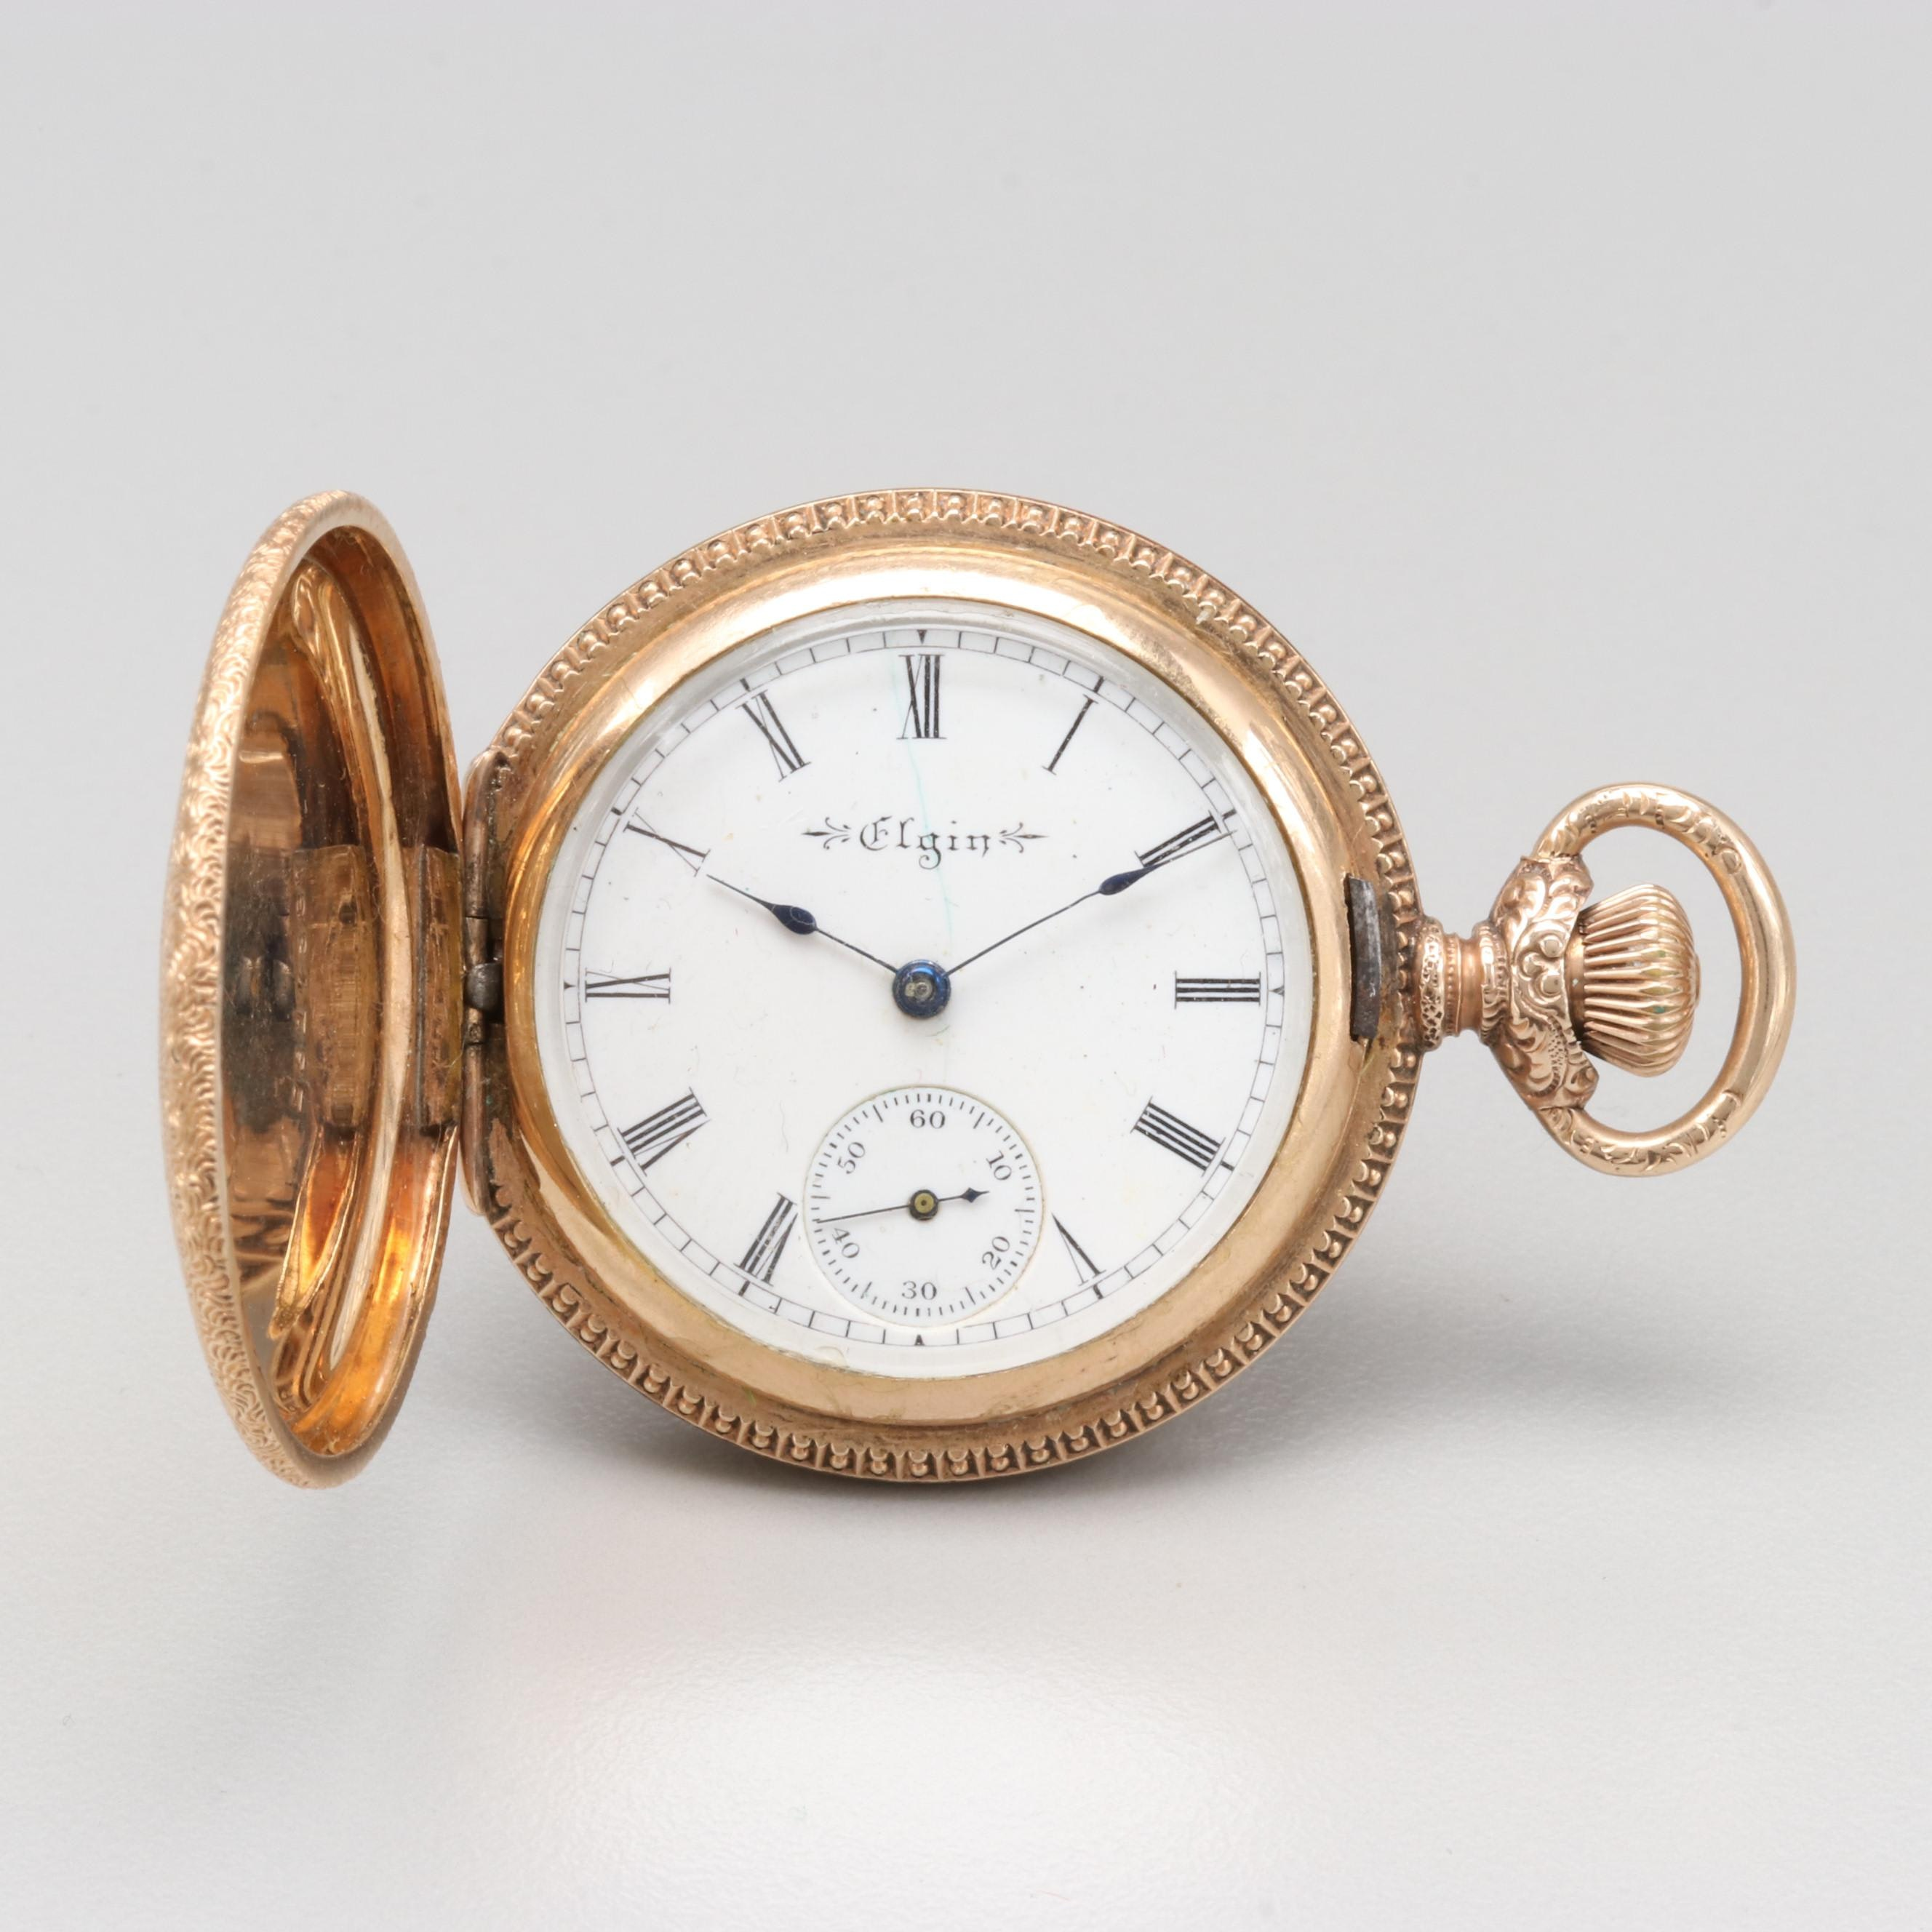 Elgin Gold Filled Hunting Case Pocket Watch Circa 1900